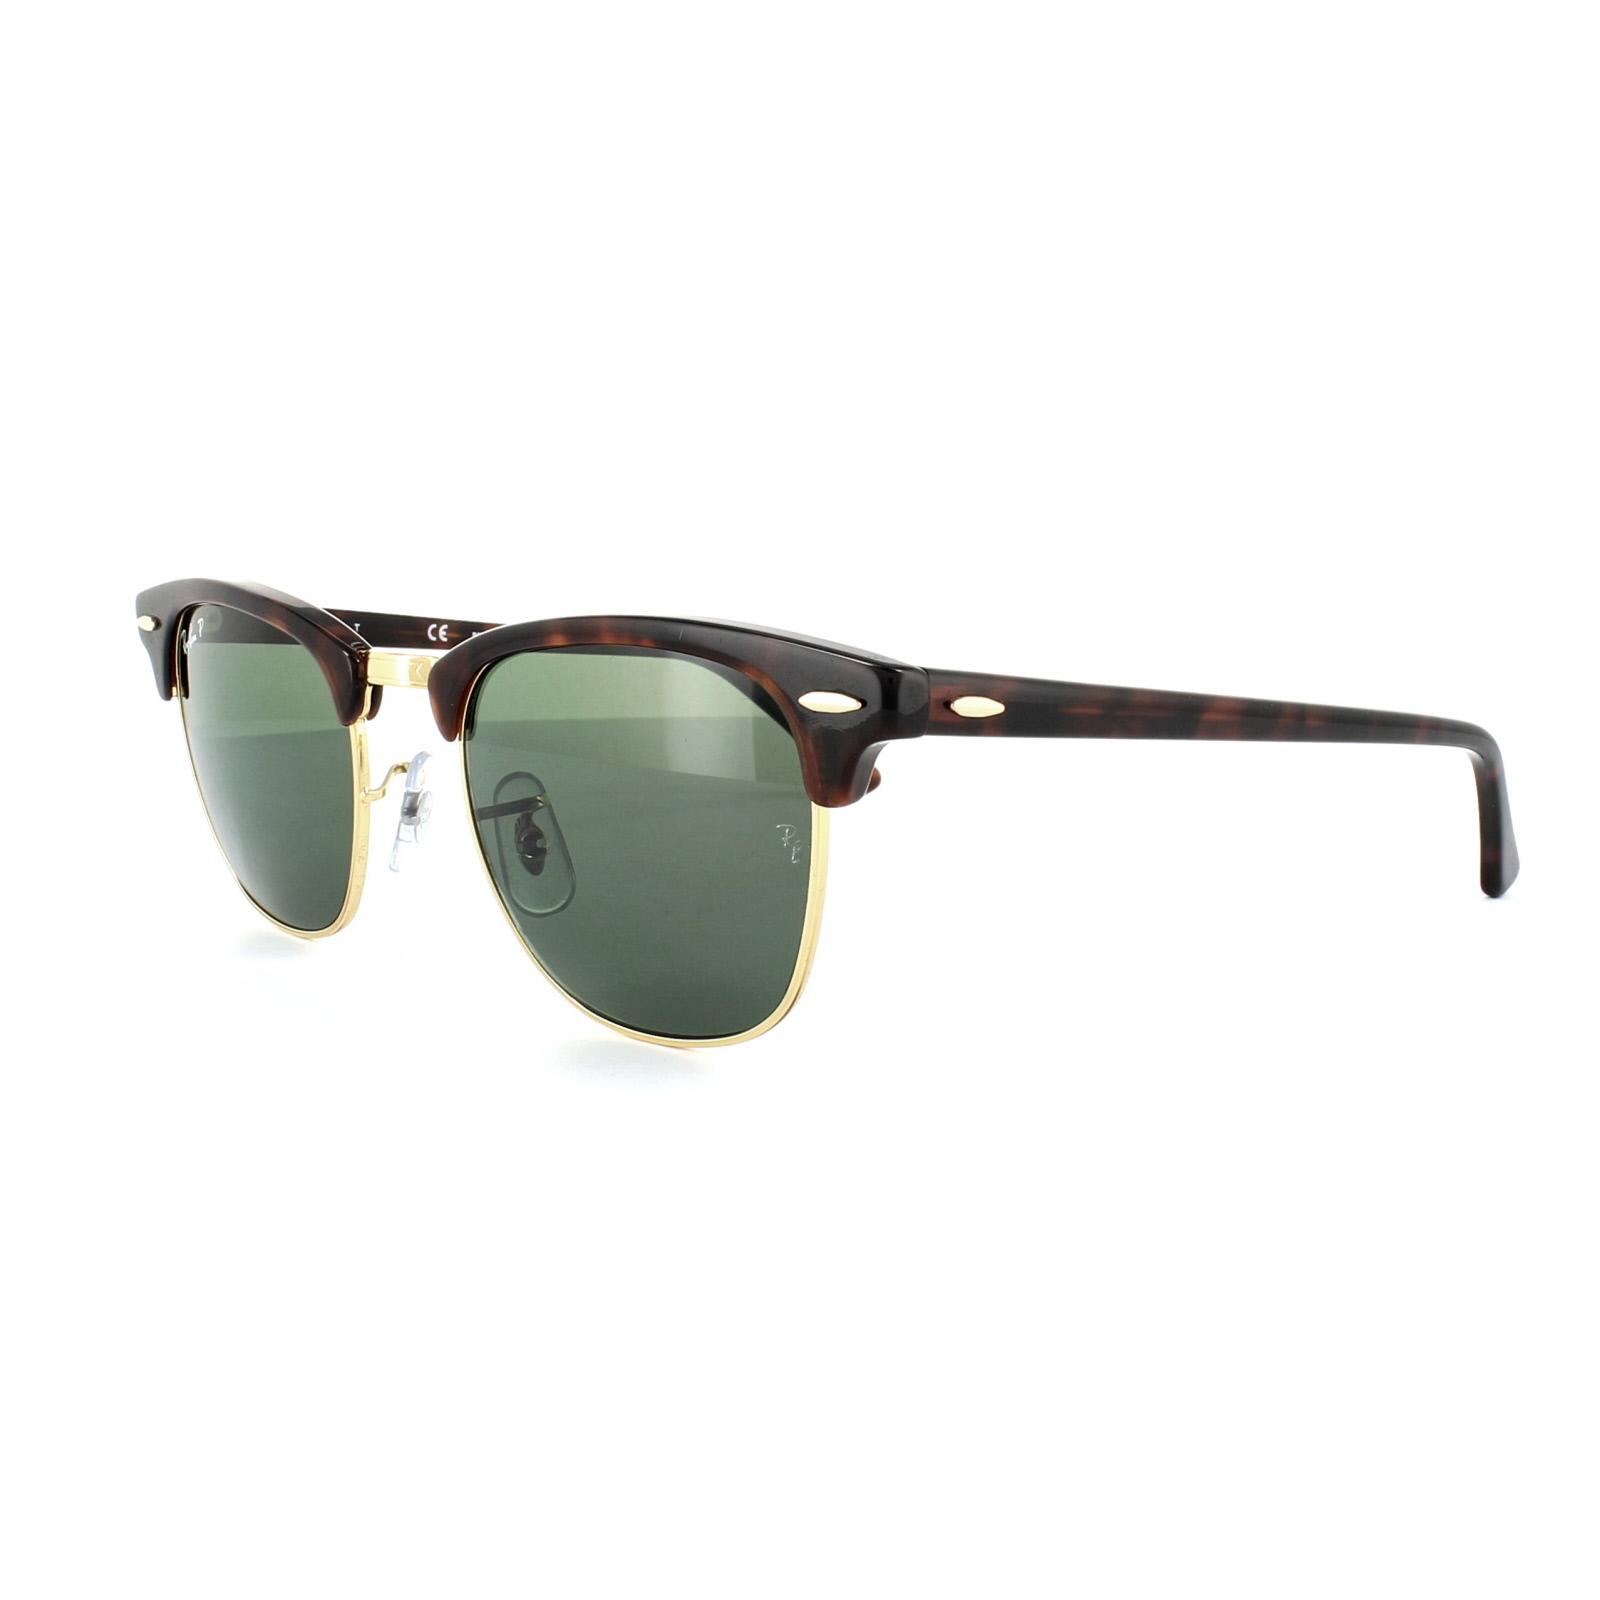 b57cab48e83b6a Ray-Ban Sunglasses Clubmaster 3016 990 58 Red Havana Green Polarized Small  49mm Thumbnail ...